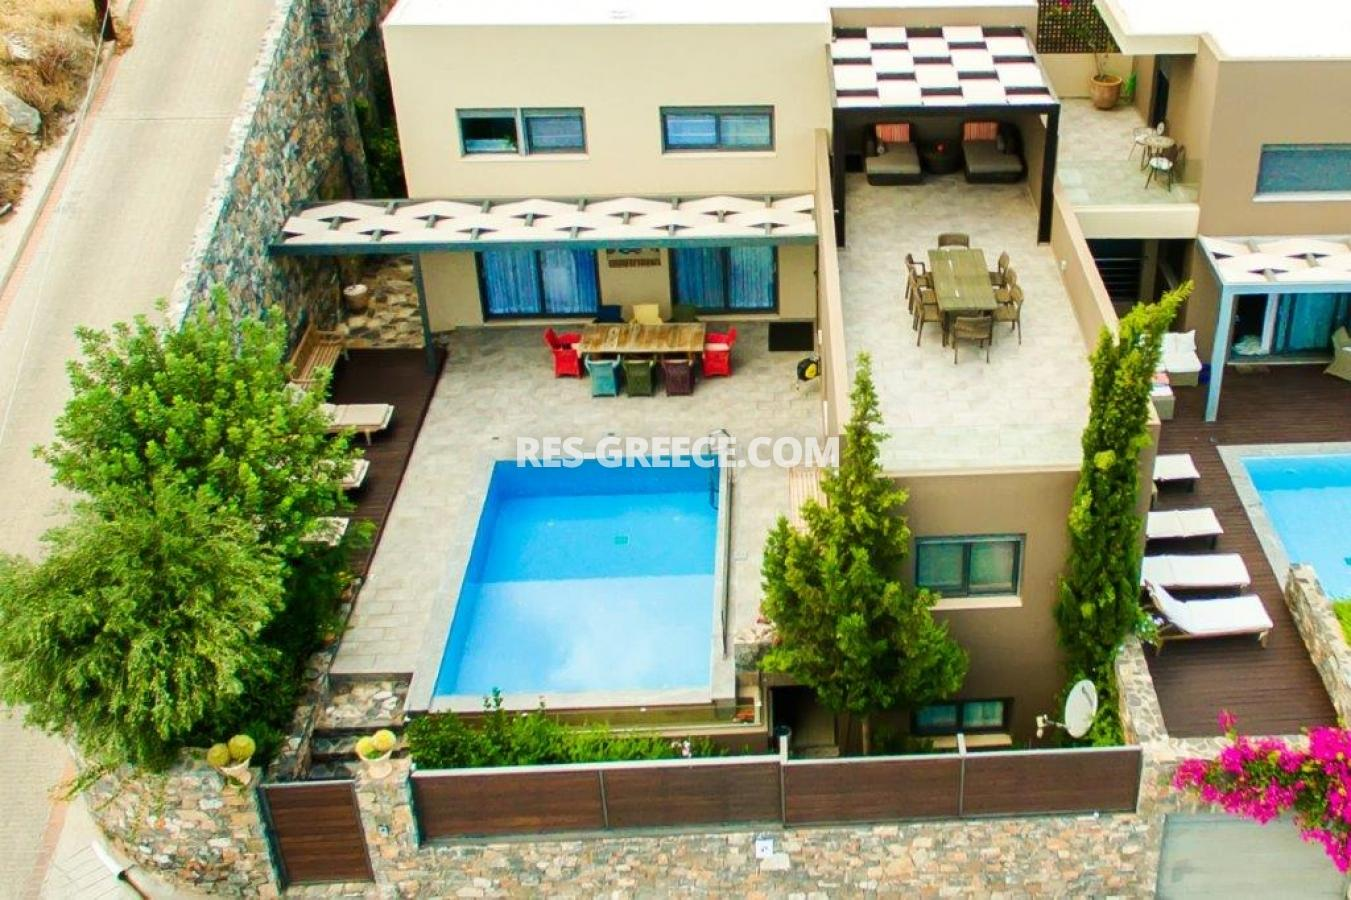 Aura Blue, Crete, Greece - villa with pool for sale in the best spot in Crete, in Elounda - Photo 37